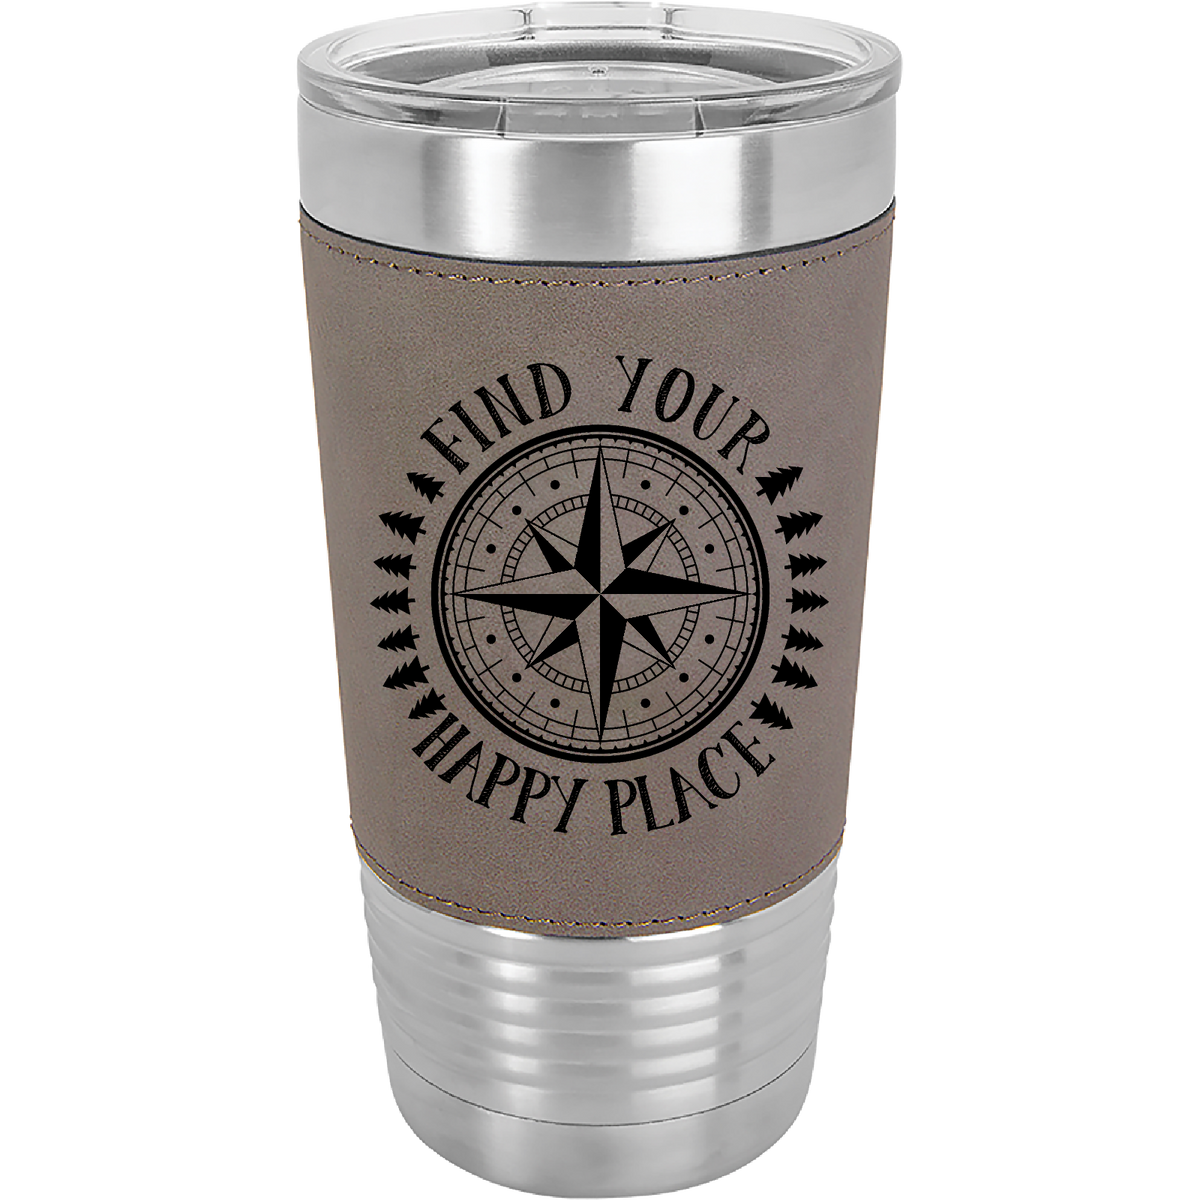 Find Your Happy Place - 20oz. Leatherette Tumber with Clear Lid